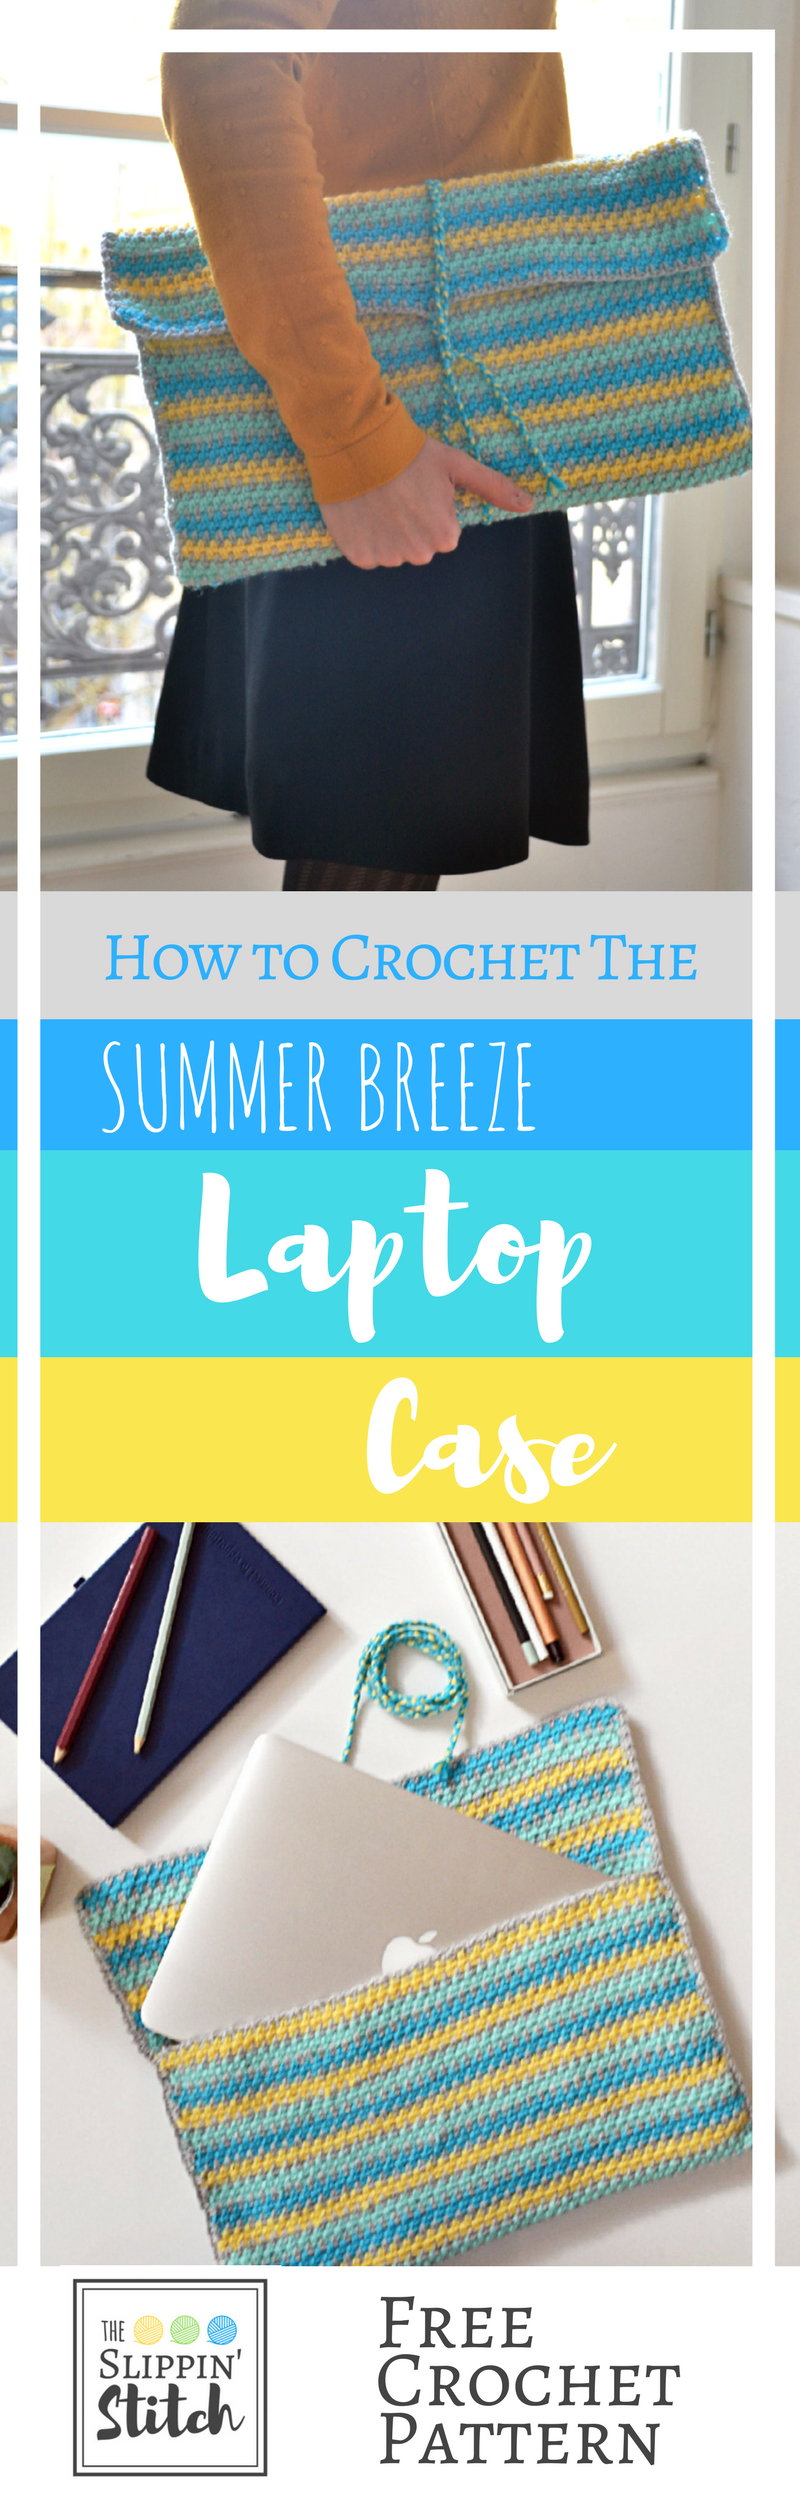 Beautiful Summer Breeze Laptop Case - Free Crochet Pattern suitable for Beginners